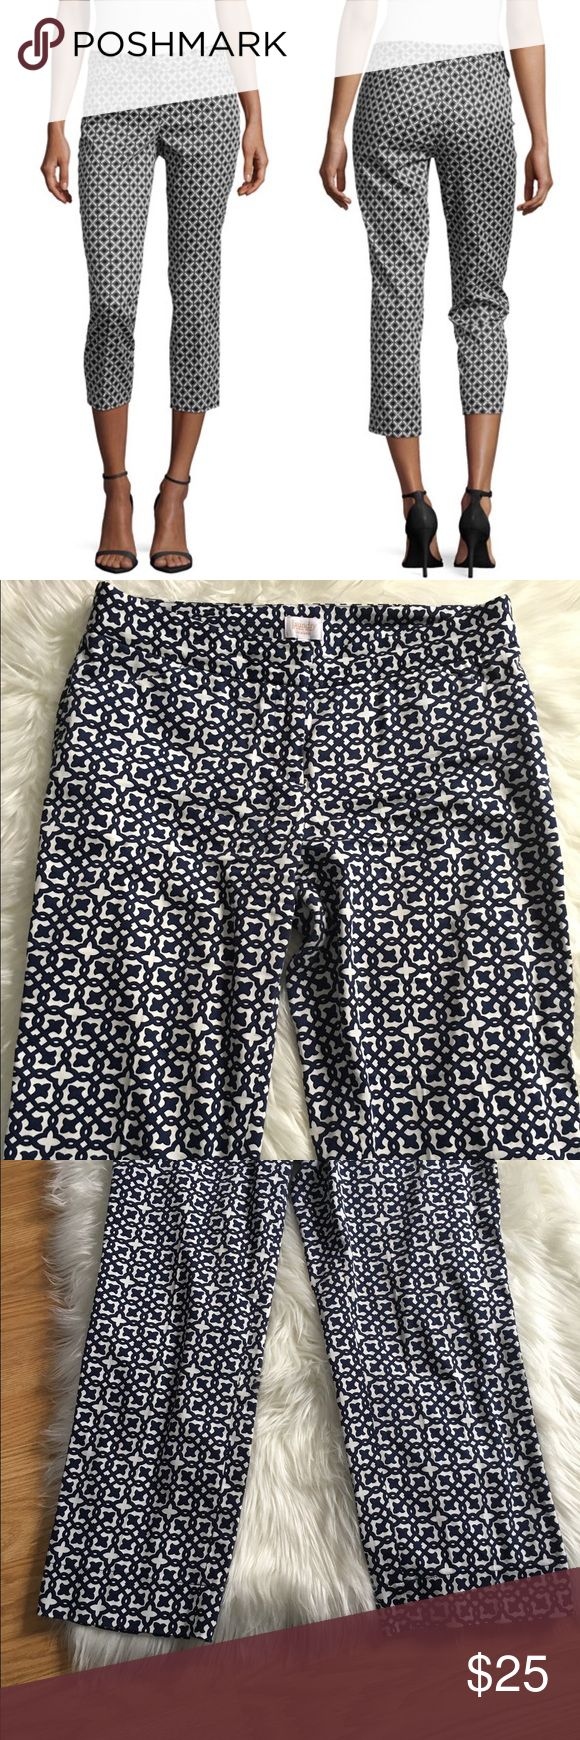 Laundry Shelli Segal Blue Geometric Pants Excellent condition! 16 inch waist 24 inseam 35 inch hip. NO TRADES PLEASE Laundry by Shelli Segal Pants Ankle & Cropped